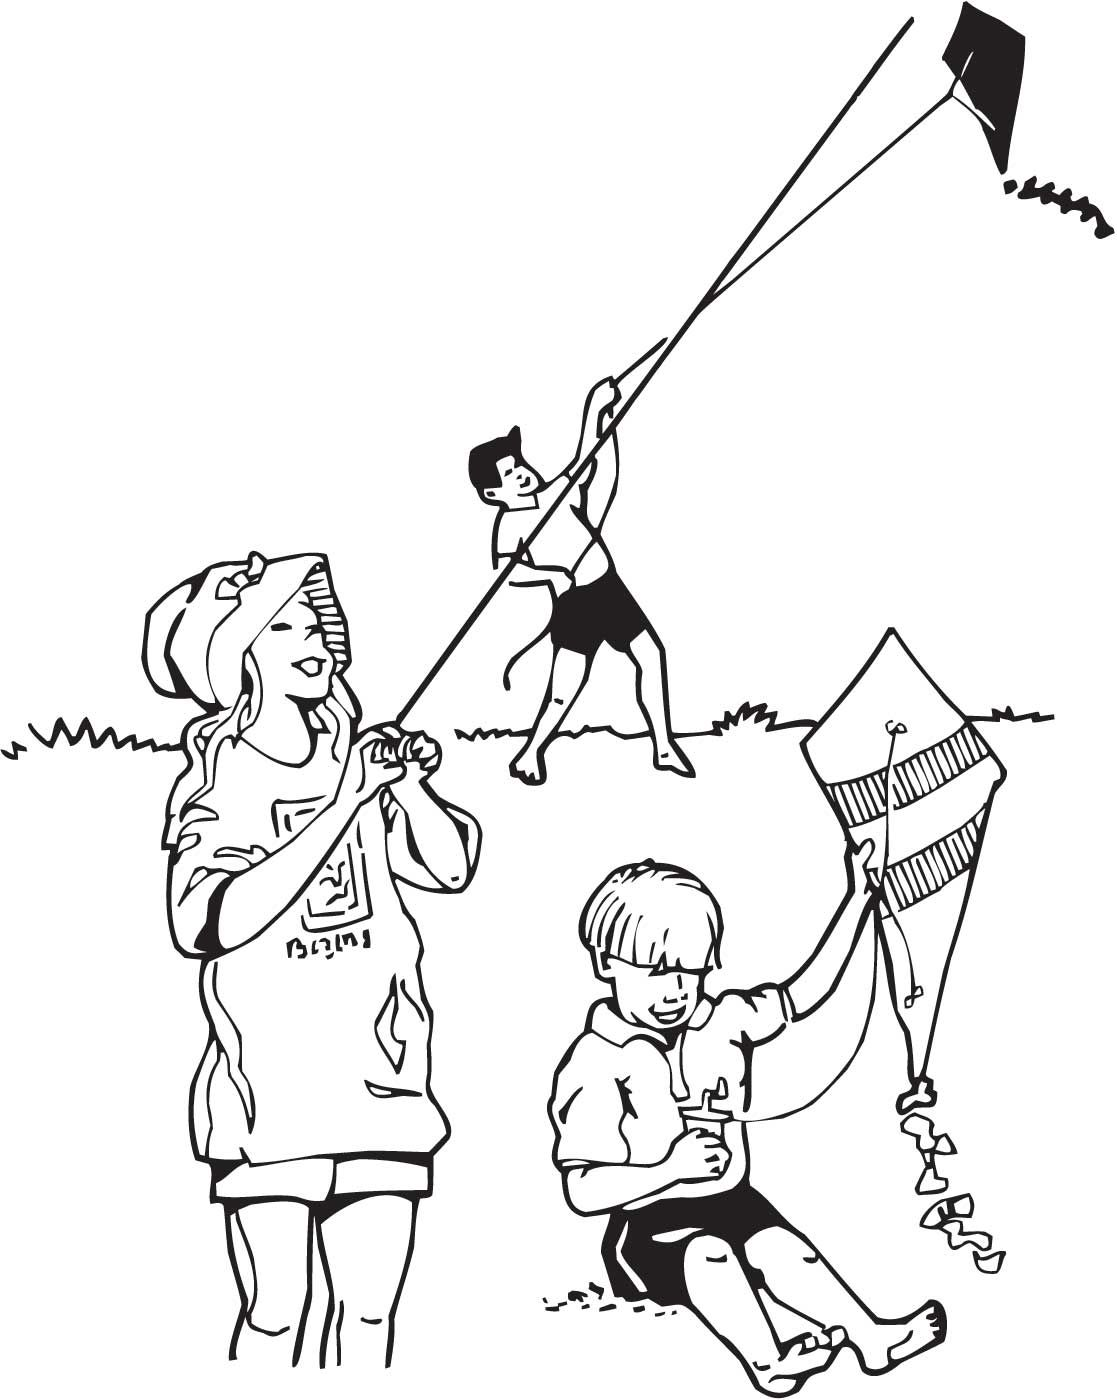 coloring pages of child flying kites | Trends For > Flying Kite ...